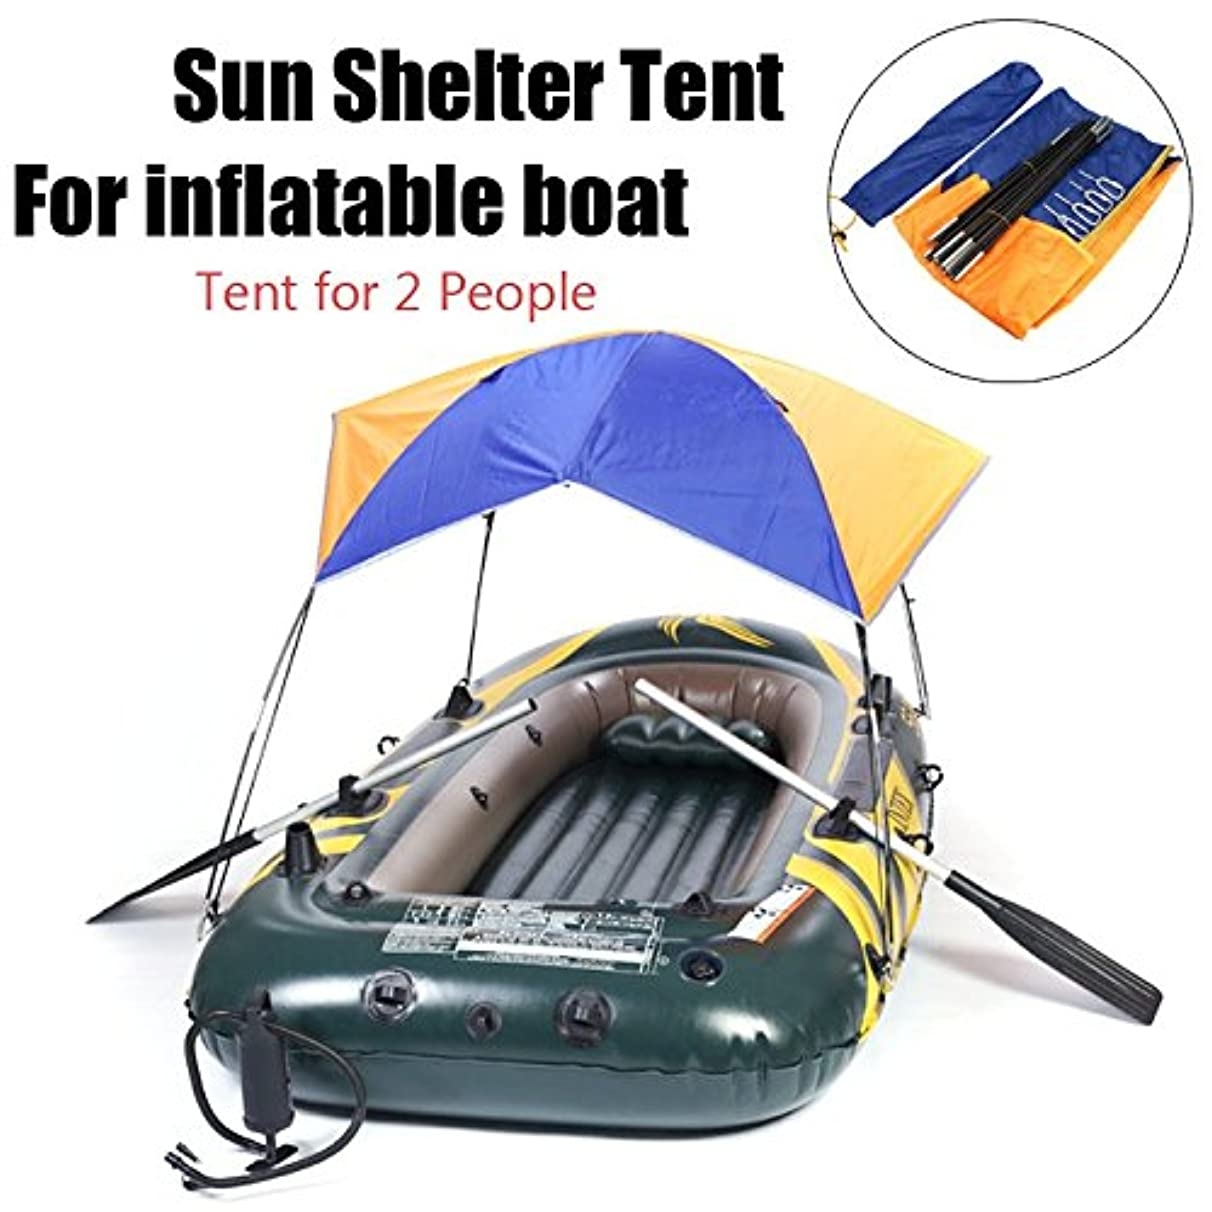 WOOT Inflatable Boat Tent Dinghy Folding Awning Fishing Resting Picnic Mountain Inflatables Sun Canoe Shade Shelter Sailboat Top Cover Rain Canopy Hovercraft Sunshade Uv Protection Tents